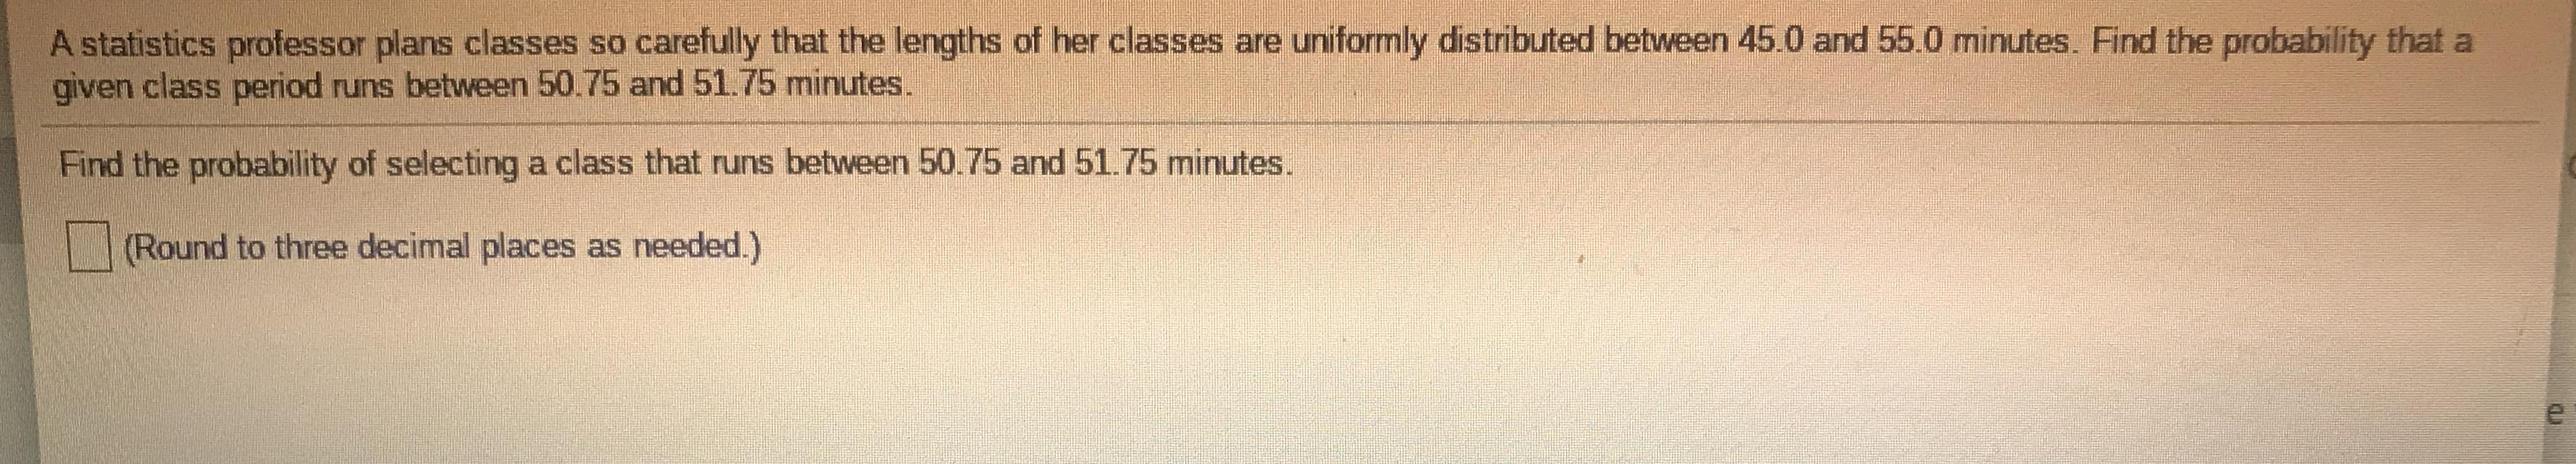 A statistics professor plans classes so carefully that the lengths of her classes are uniformly distributed between 45.0 and 55.0 minutes. Find the probability that a given class period runs between 50.75 and 51.75 minutes. Find the probability of selecting a class that runs between 50.75 and 51.75 minutes. (Round to three decimal places as needed.)